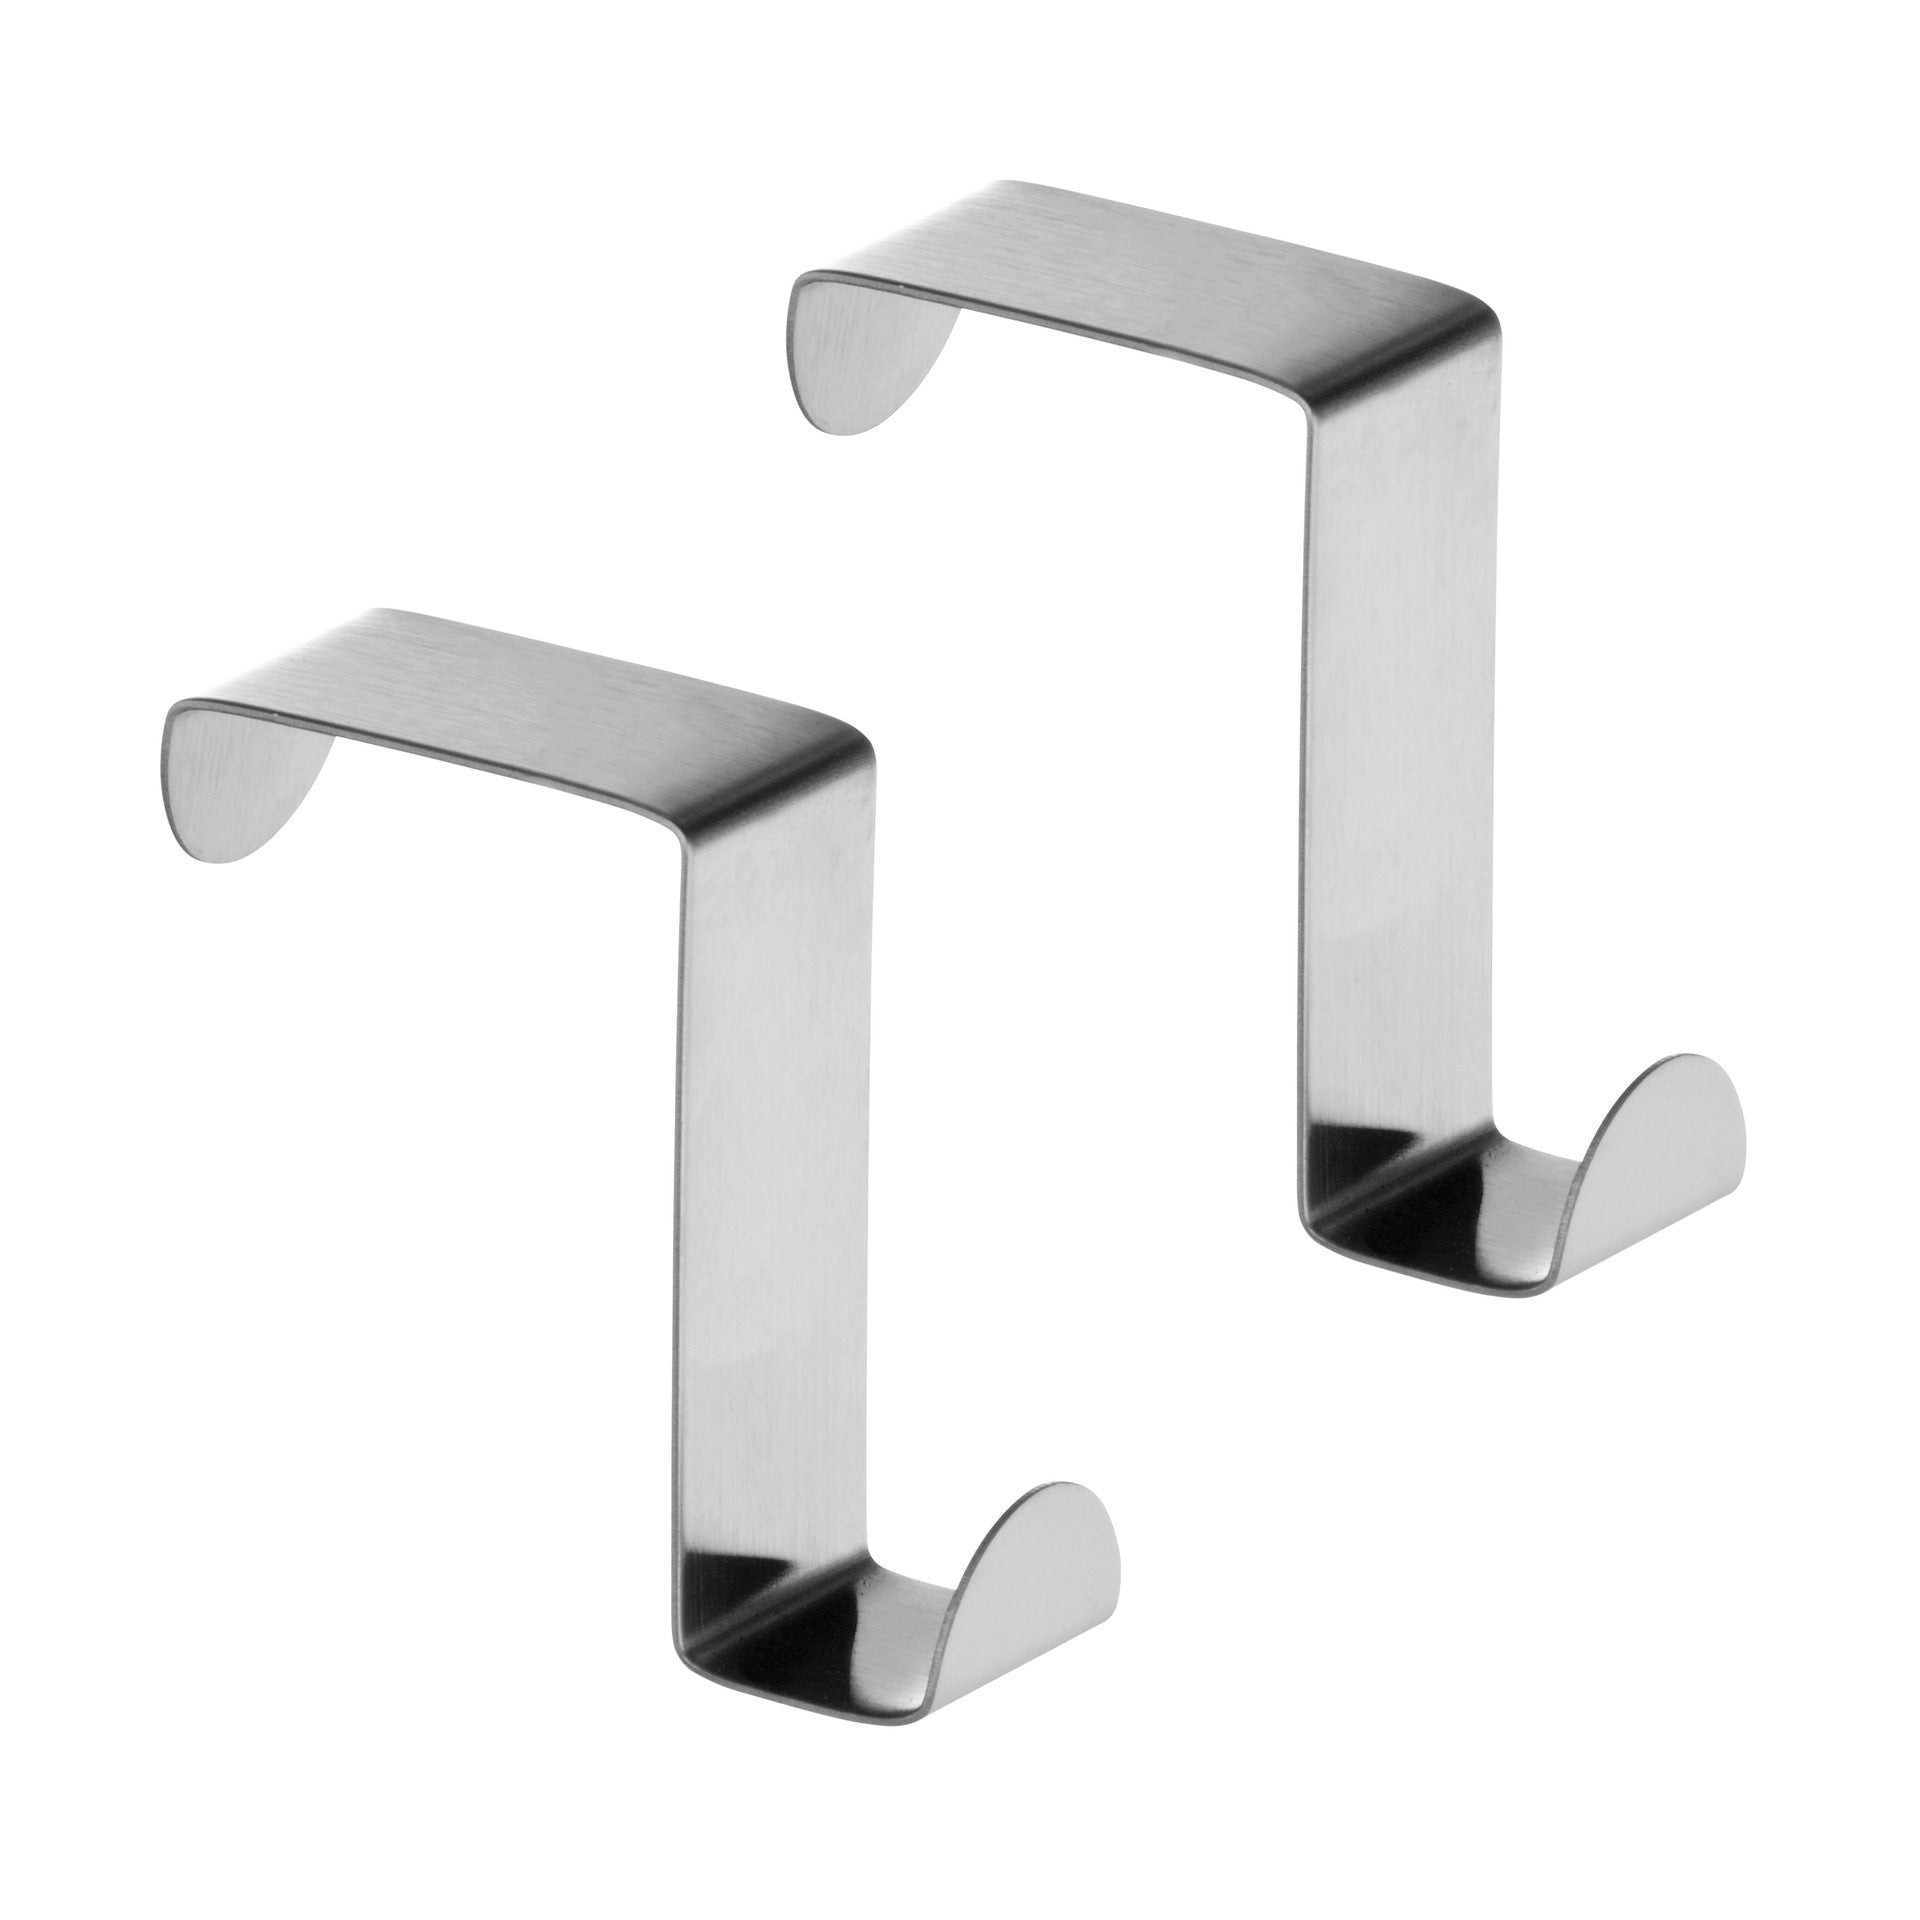 Premier Set of 2 Stainless Steel Over Multi Door Hook-0509693 - Homely Nigeria